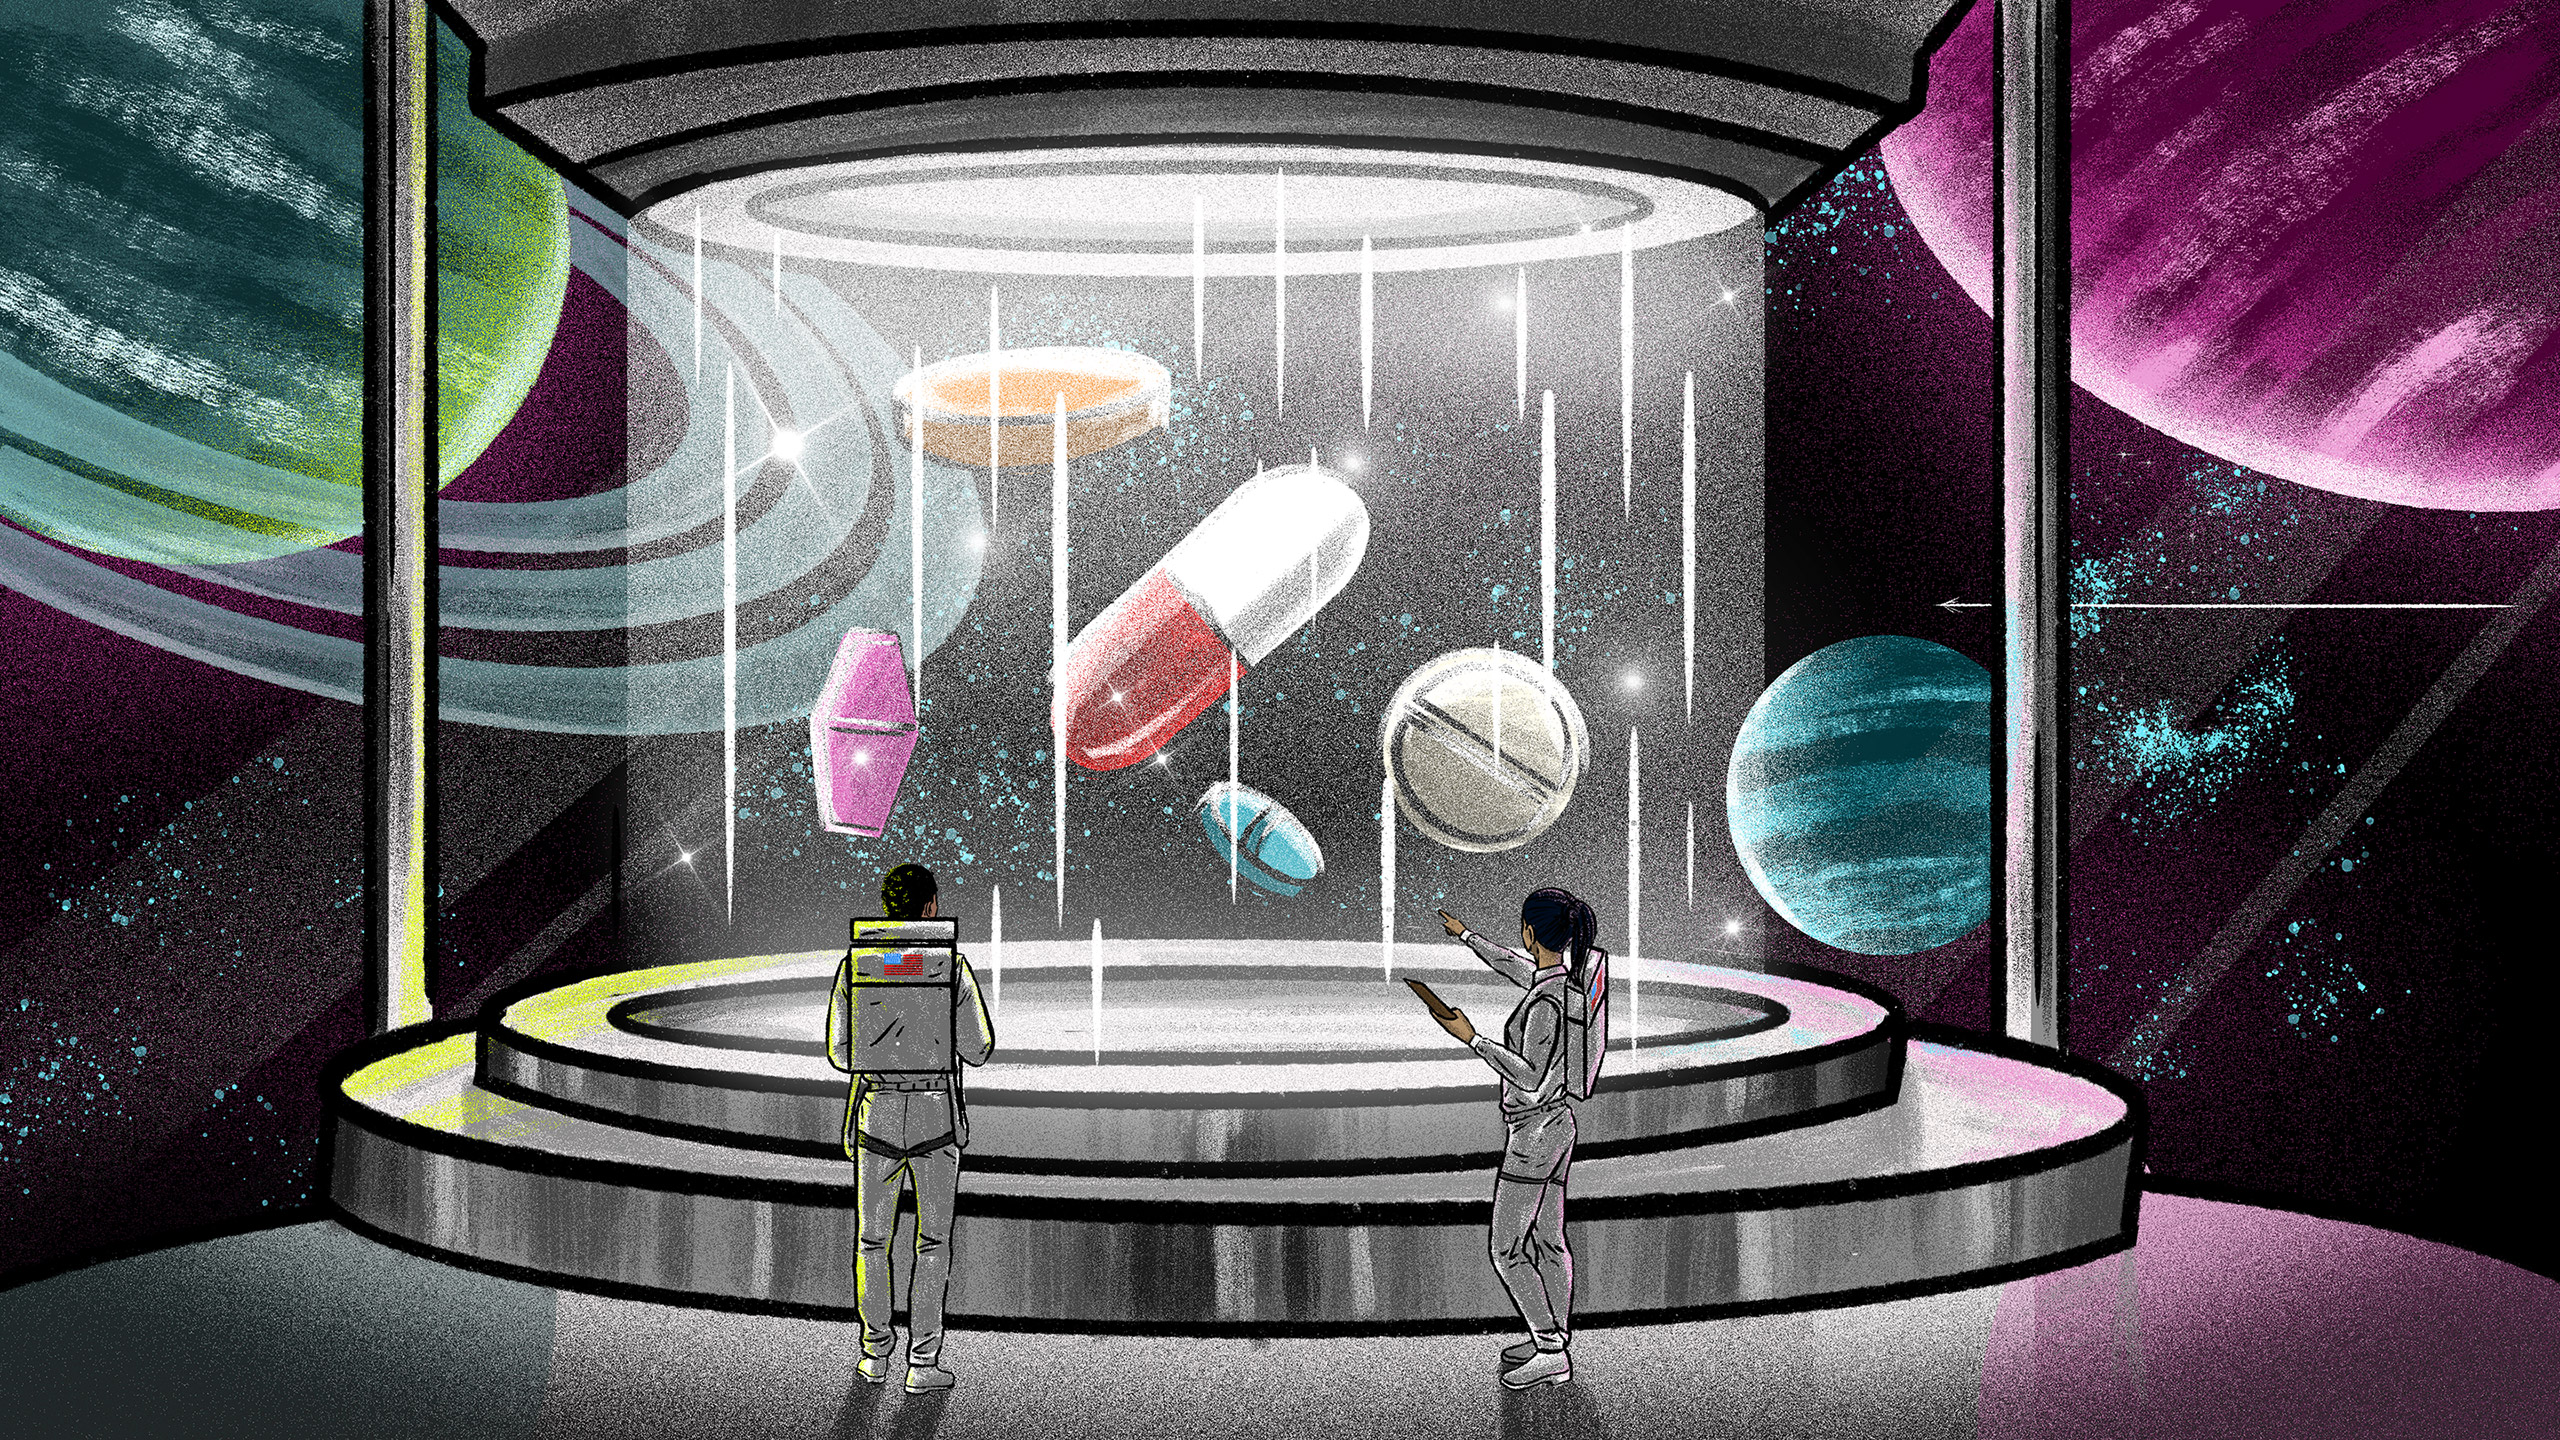 A futuristic illustration of two astronauts growing medicine in pill form with deep space in the background.